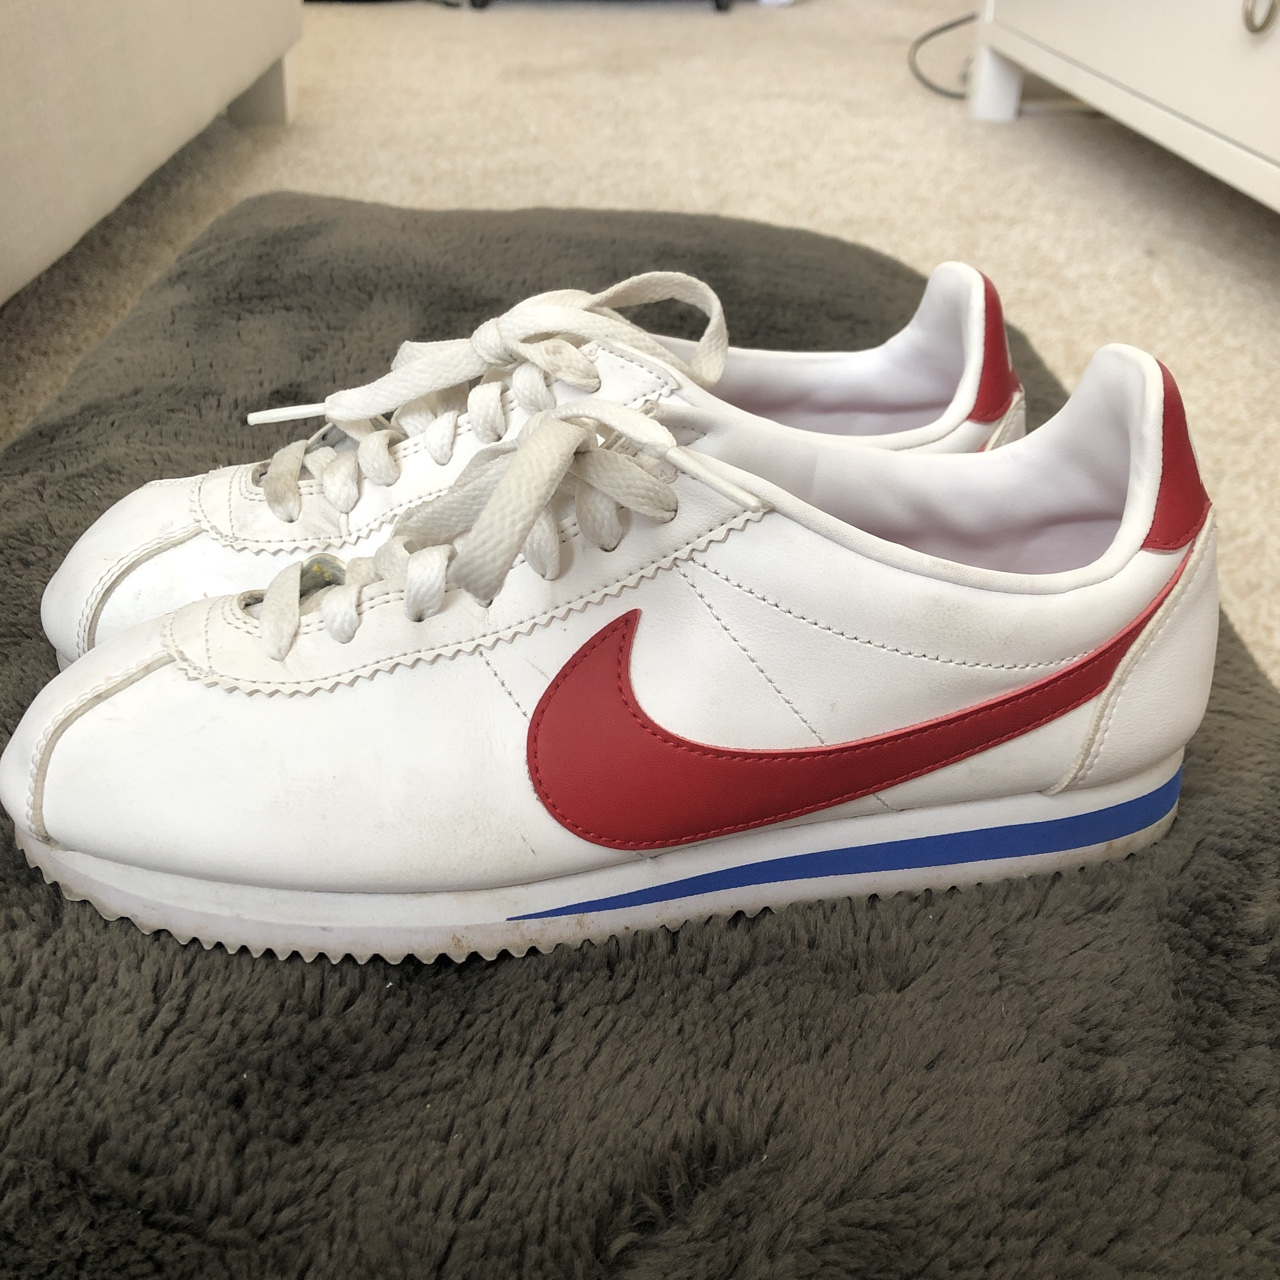 new concept 9f658 40a3f Forrest Gump classic nike cortez shoes! So cute, in... - Depop